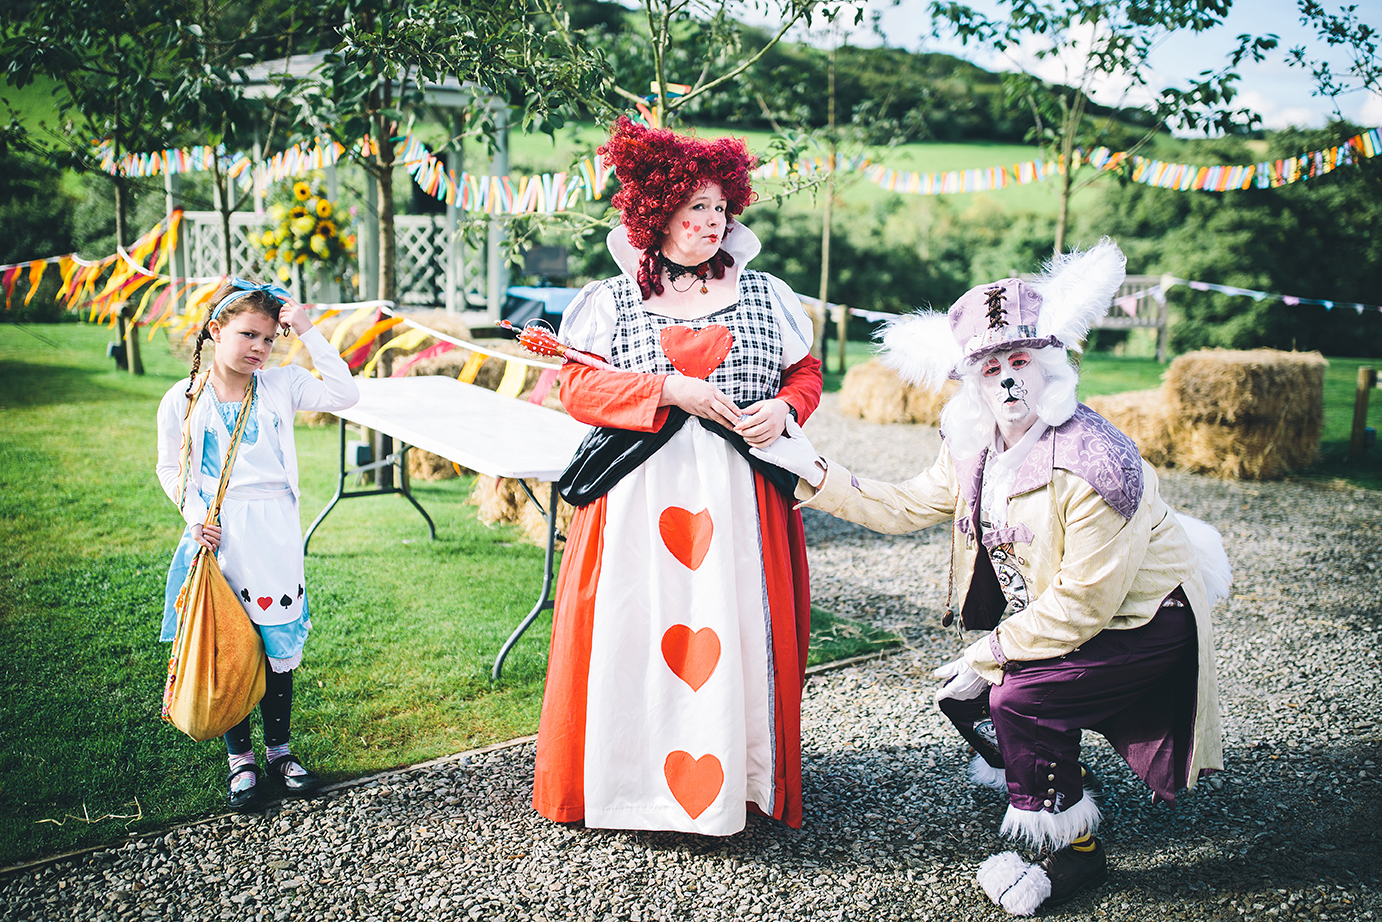 Alice in Wonderland from Marvellous Event-ures from our 2016 event.